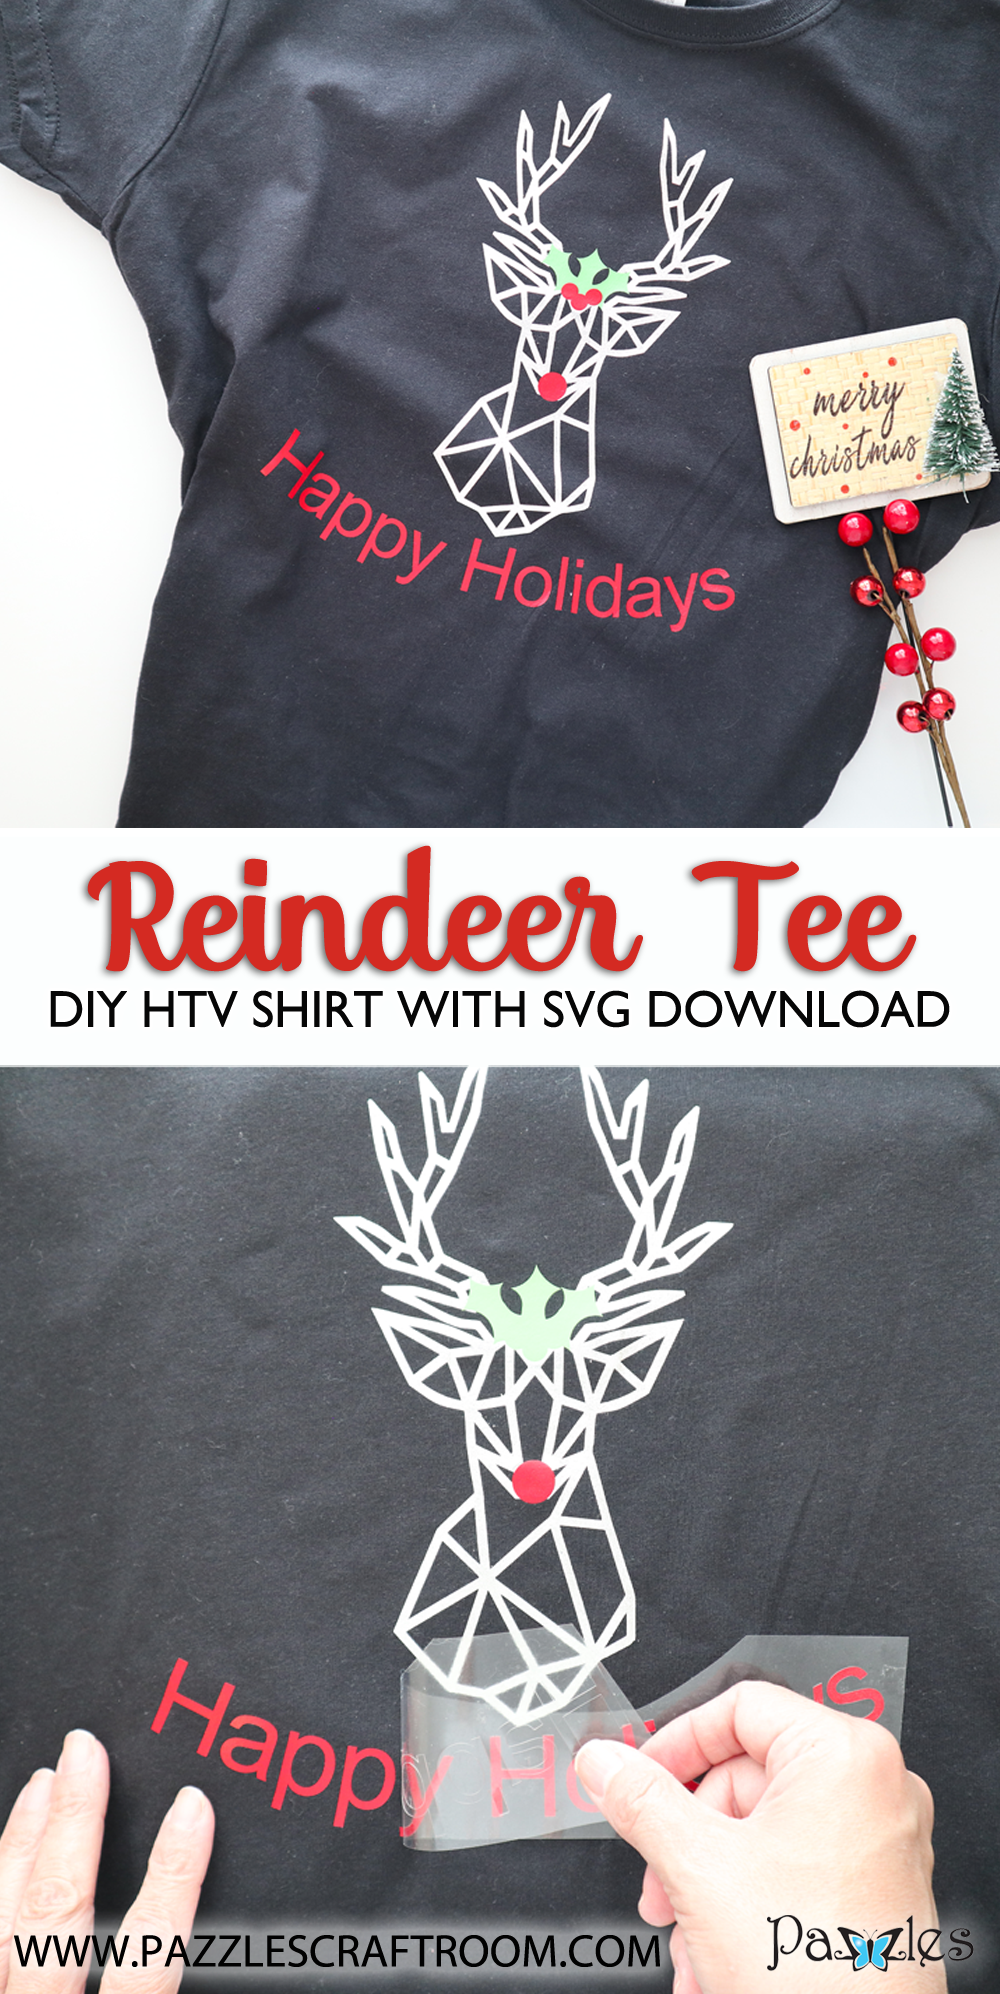 Pazzles DIY Reindeer Shirt with instant SVG download. Compatible with all major electronic cutters including Pazzles Inspiration, Cricut, and Silhouette Cameo. Design by Monica Martinez.